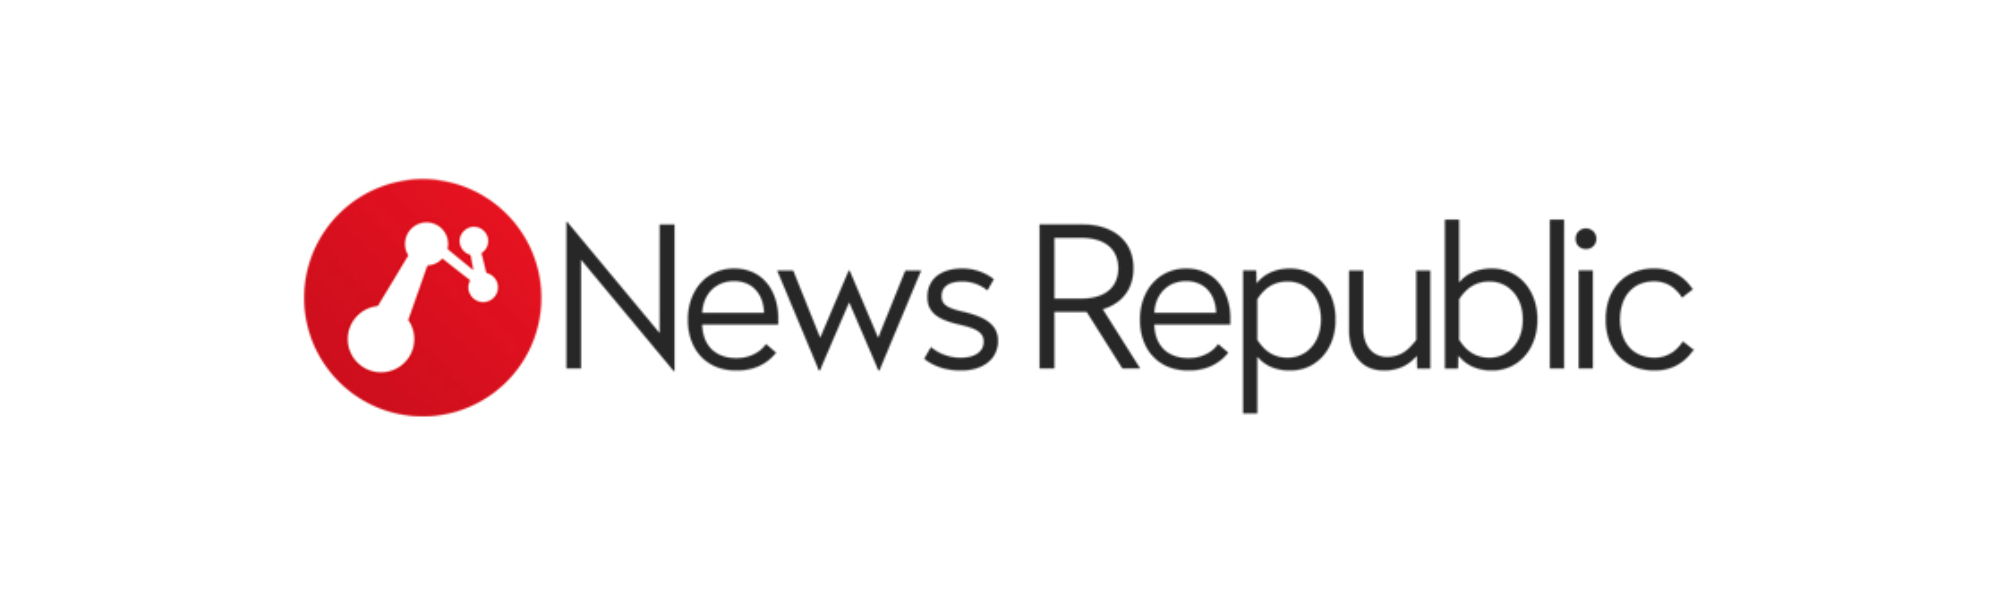 News Republic gets an update adding iOS 9 enhancements and more